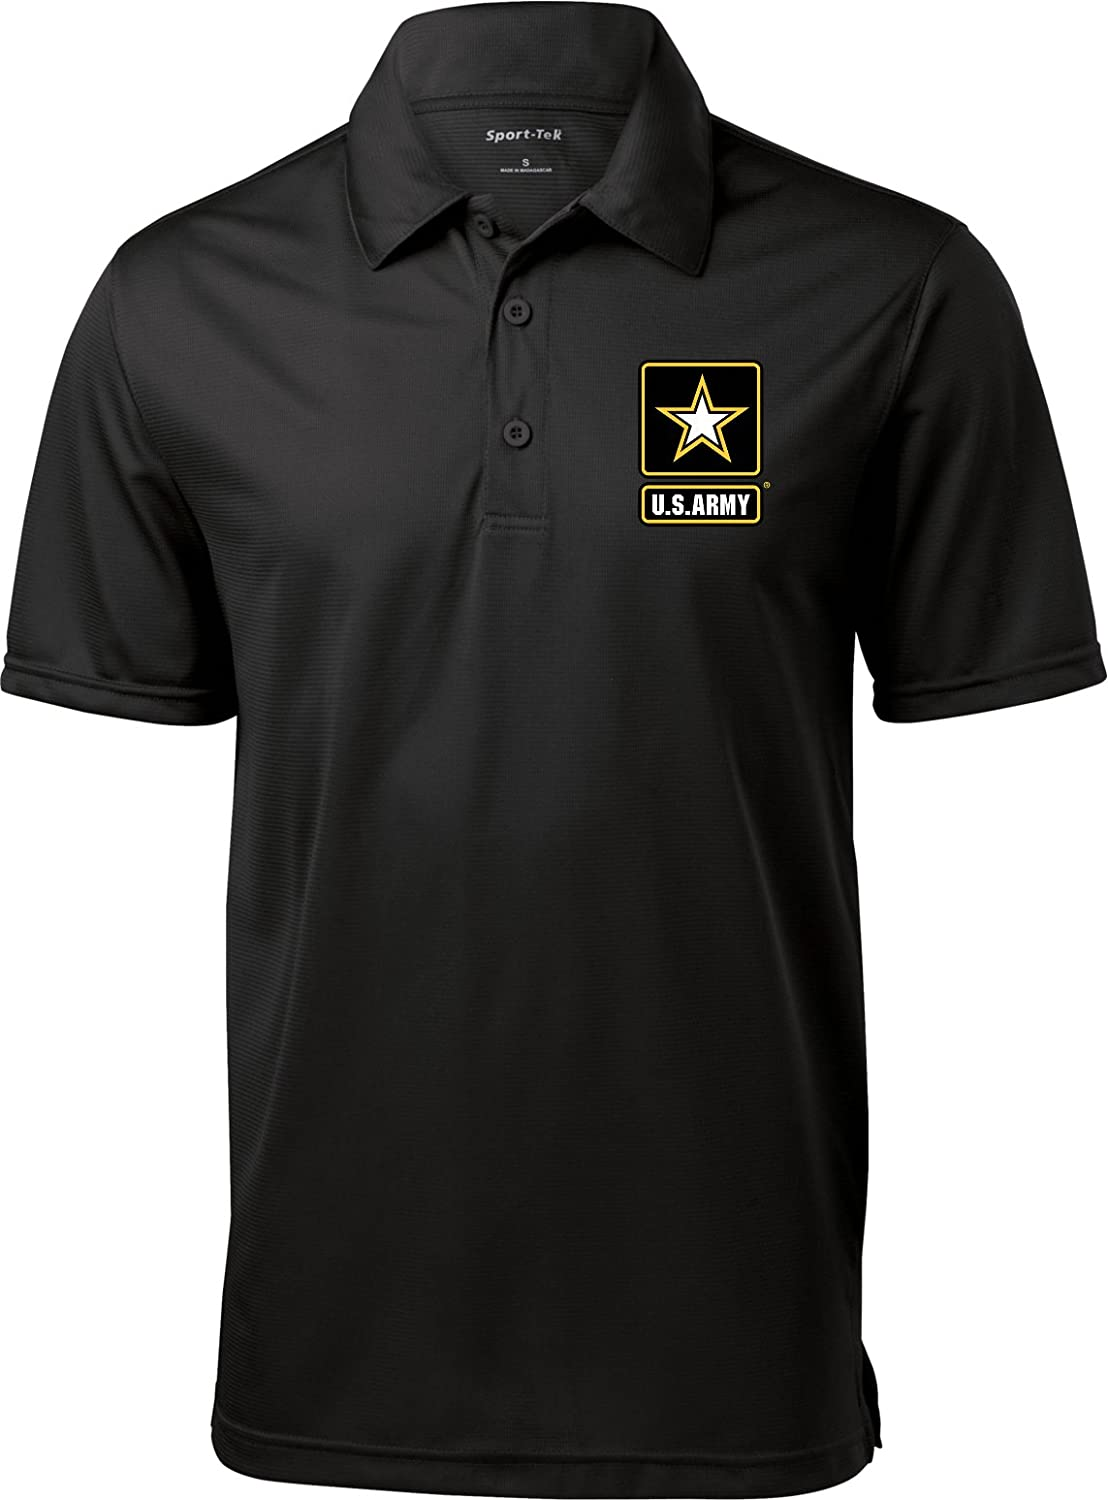 8f676cf6e A mens polo featuring the U.S. Army logo as a pocket print. Made of 100%  polyester. Available in sizes Small through 4XL Machine wash cold with like  colors; ...